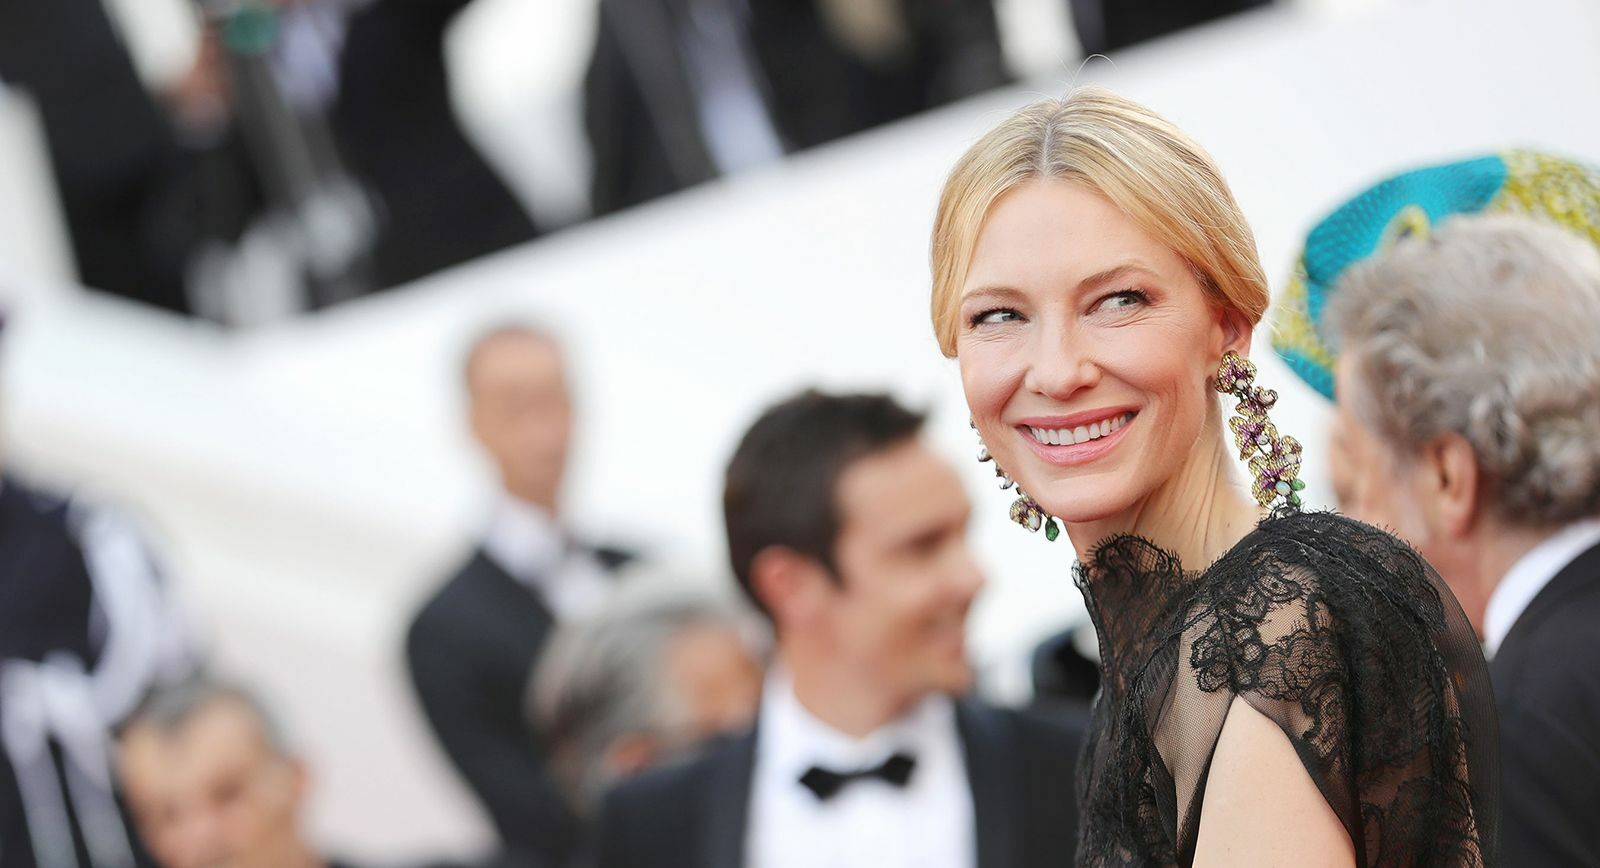 Cannes Film Festival 2018: Jewellery trends from the red carpet